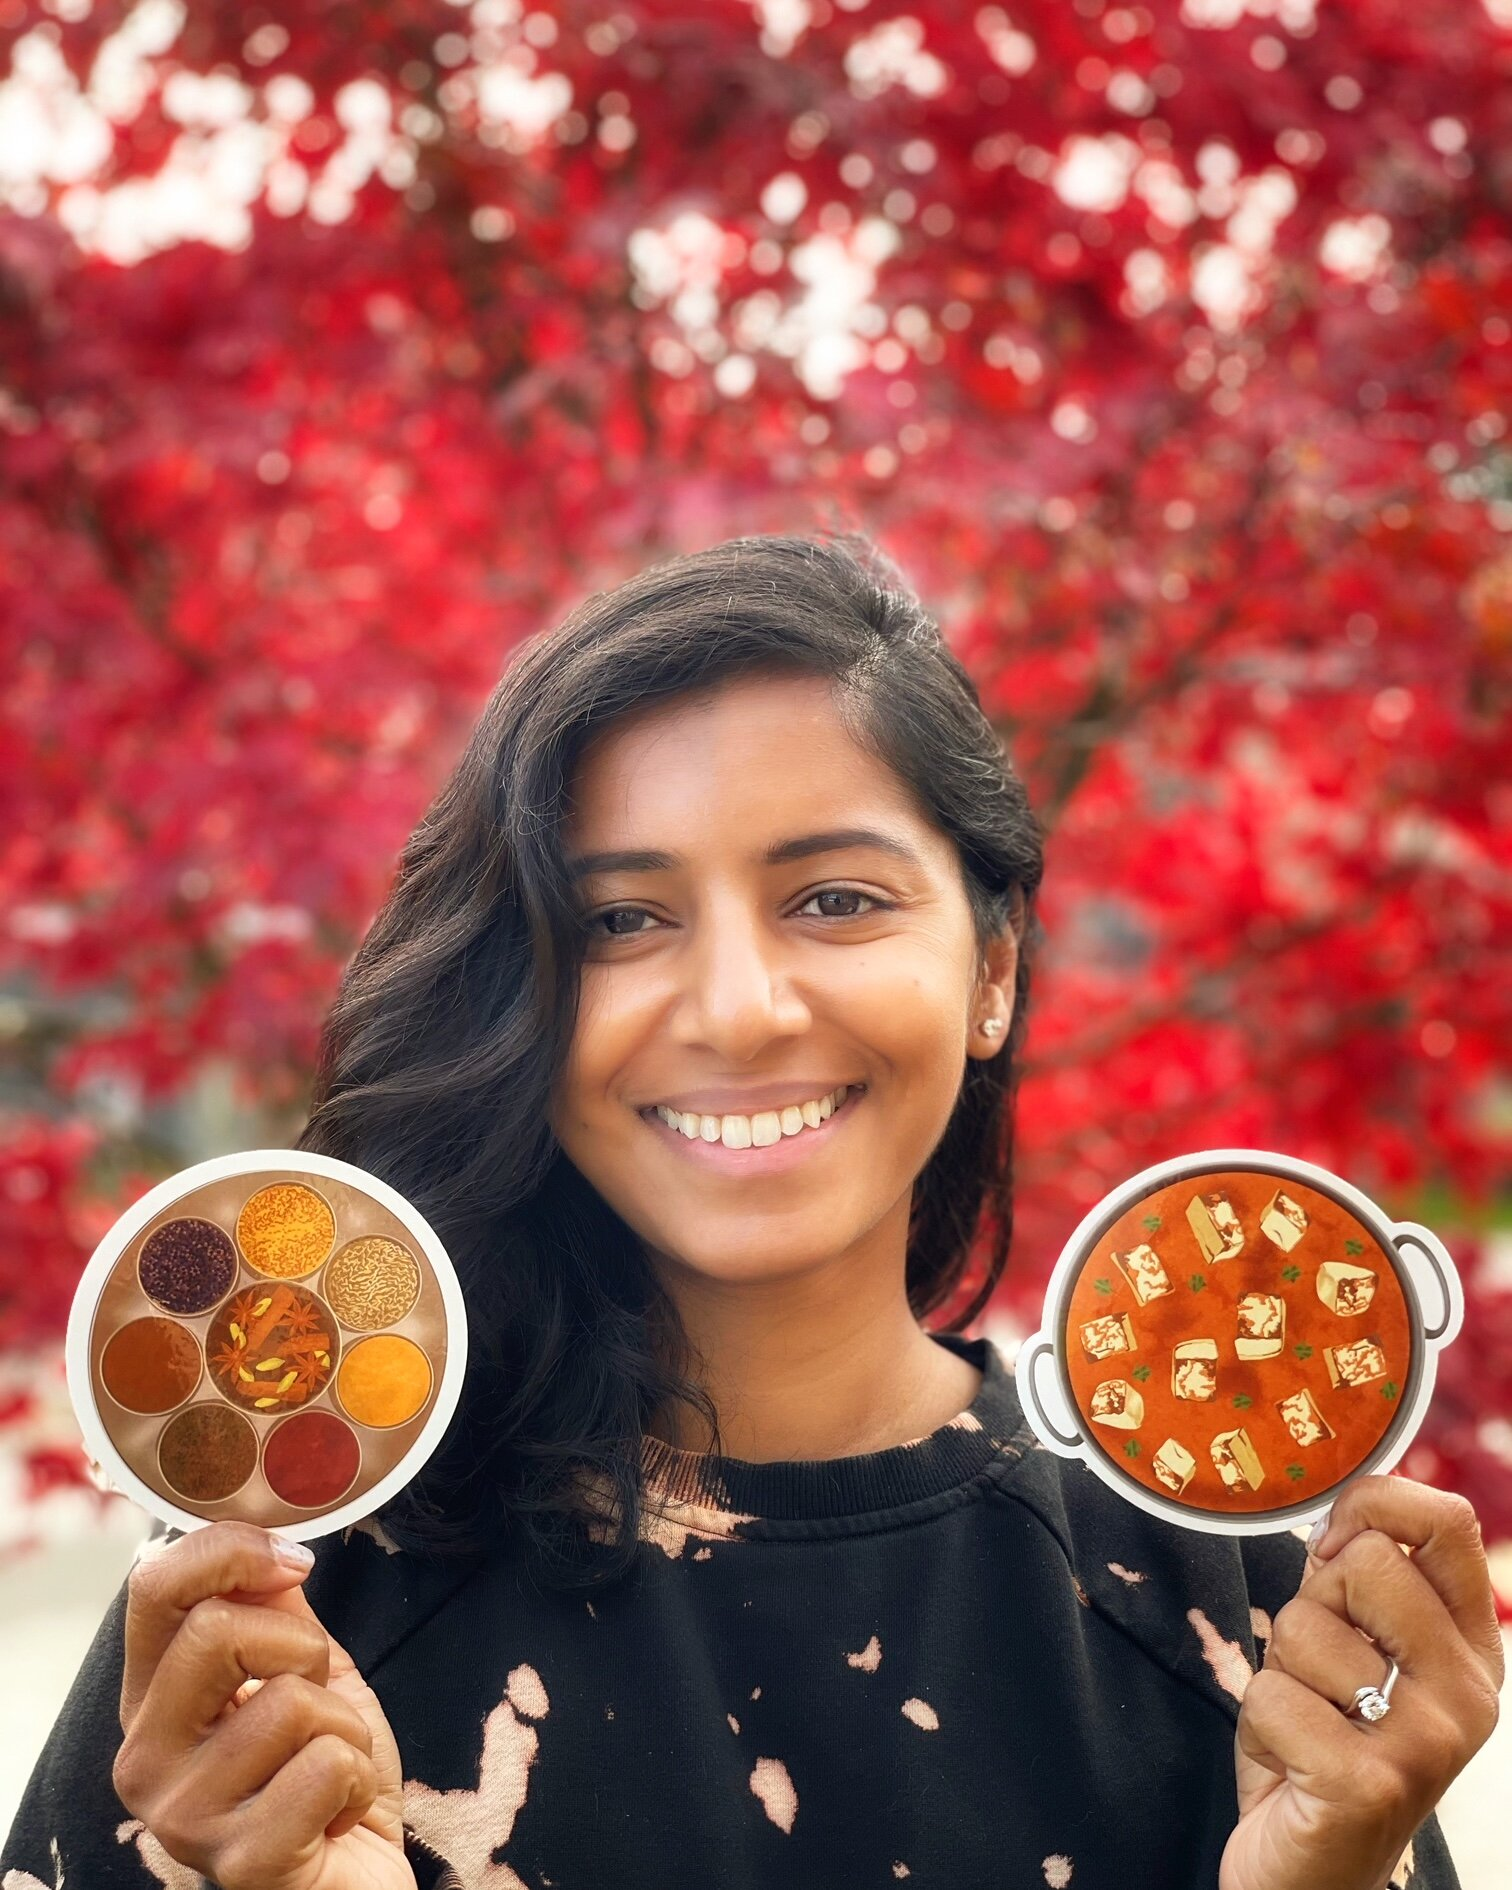 """- """"Hi! I'm Svetha, founder and artist at Indian Curryspondence where I create punny Indian food-related greeting cards and art celebrating women of color. I work as an urban planner by day, a profession I truly love because I get to lift up the voices of vulnerable and underserved communities and advocate for safer, healthier, and more complete neighborhoods.My work inspires me to lean into my culture as well. Being born in India but brought up in the U.S., I've always felt like an outsider - never truly belonging in either culture and not knowing how to identify. I felt shut out and ignored. More recently, I've grown to love my differences and to embrace my own unique culture of being an Indian-American.I started Indian Curryspondence in the middle of the pandemic to help connect people through stationary but I also like to use my art platform to advocate against colorism, casteism, racism, and other issues prevalent in Indian culture. All the proceeds from my art are donated to Black Lives Matter and other nonprofit organizations supporting BIPOC."""""""